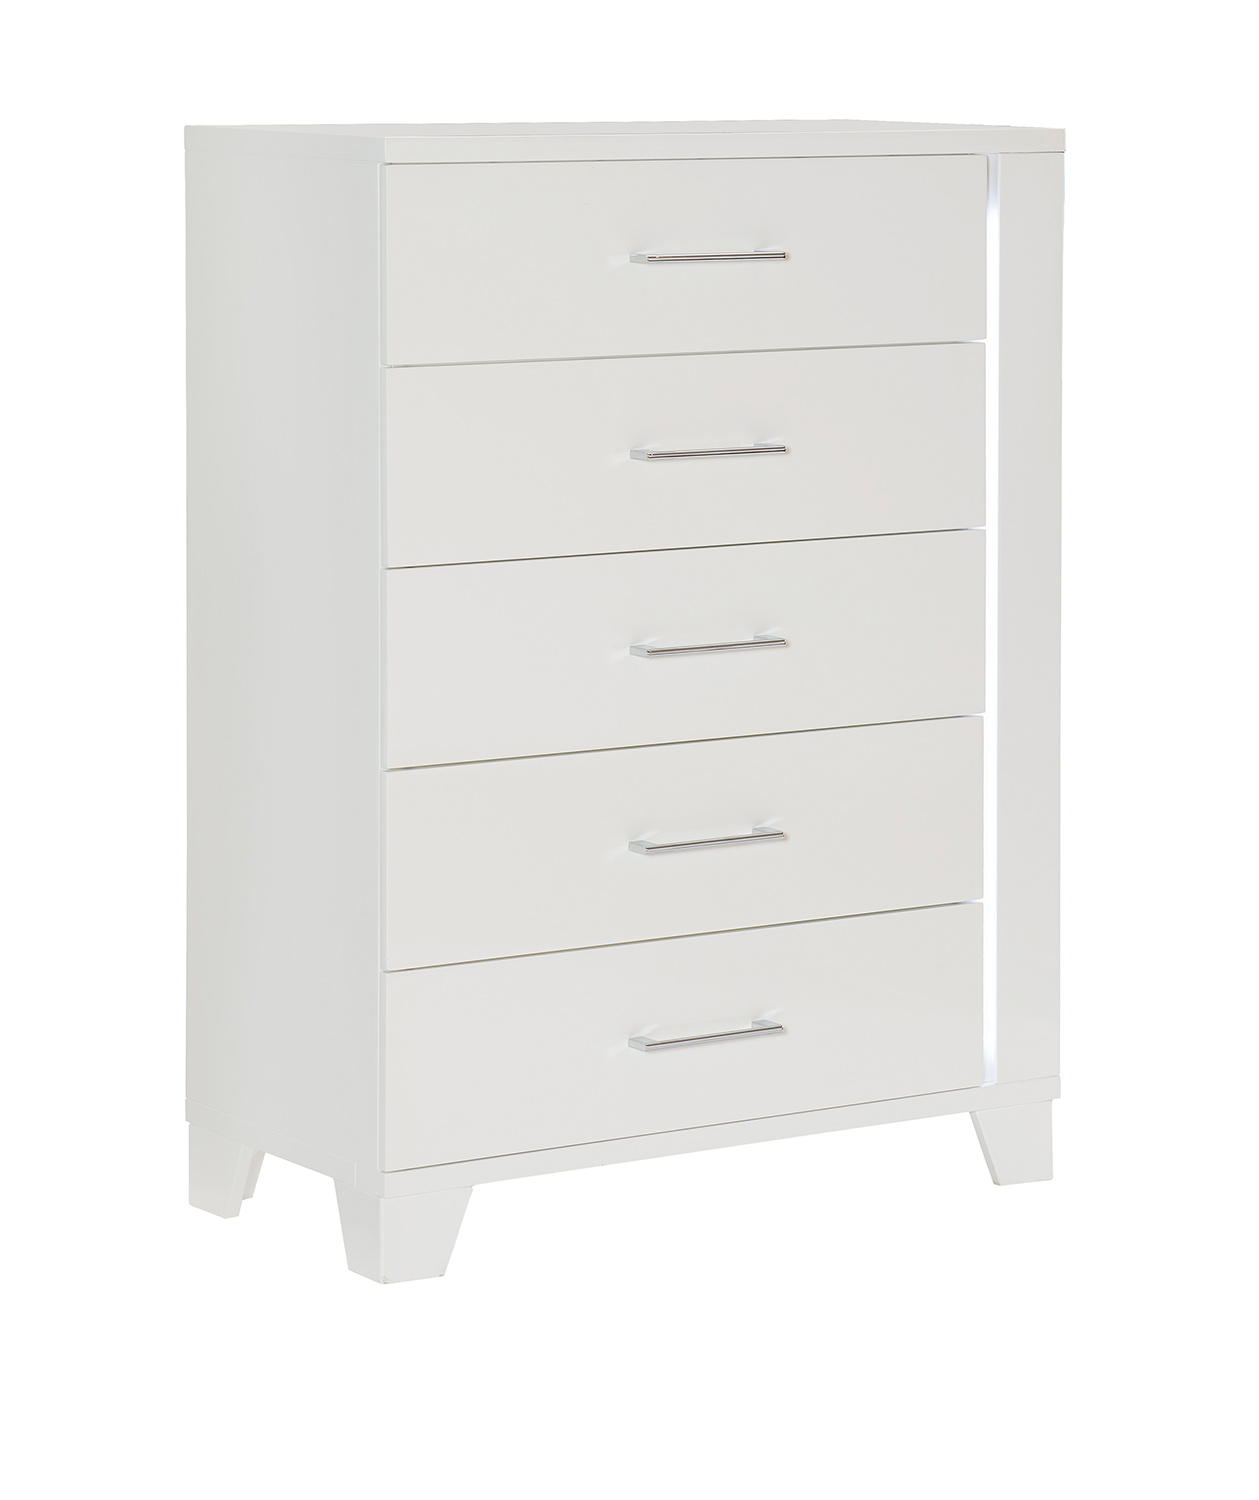 Homelegance Kerren or Keren Chest with LED Lighting - White High Gloss